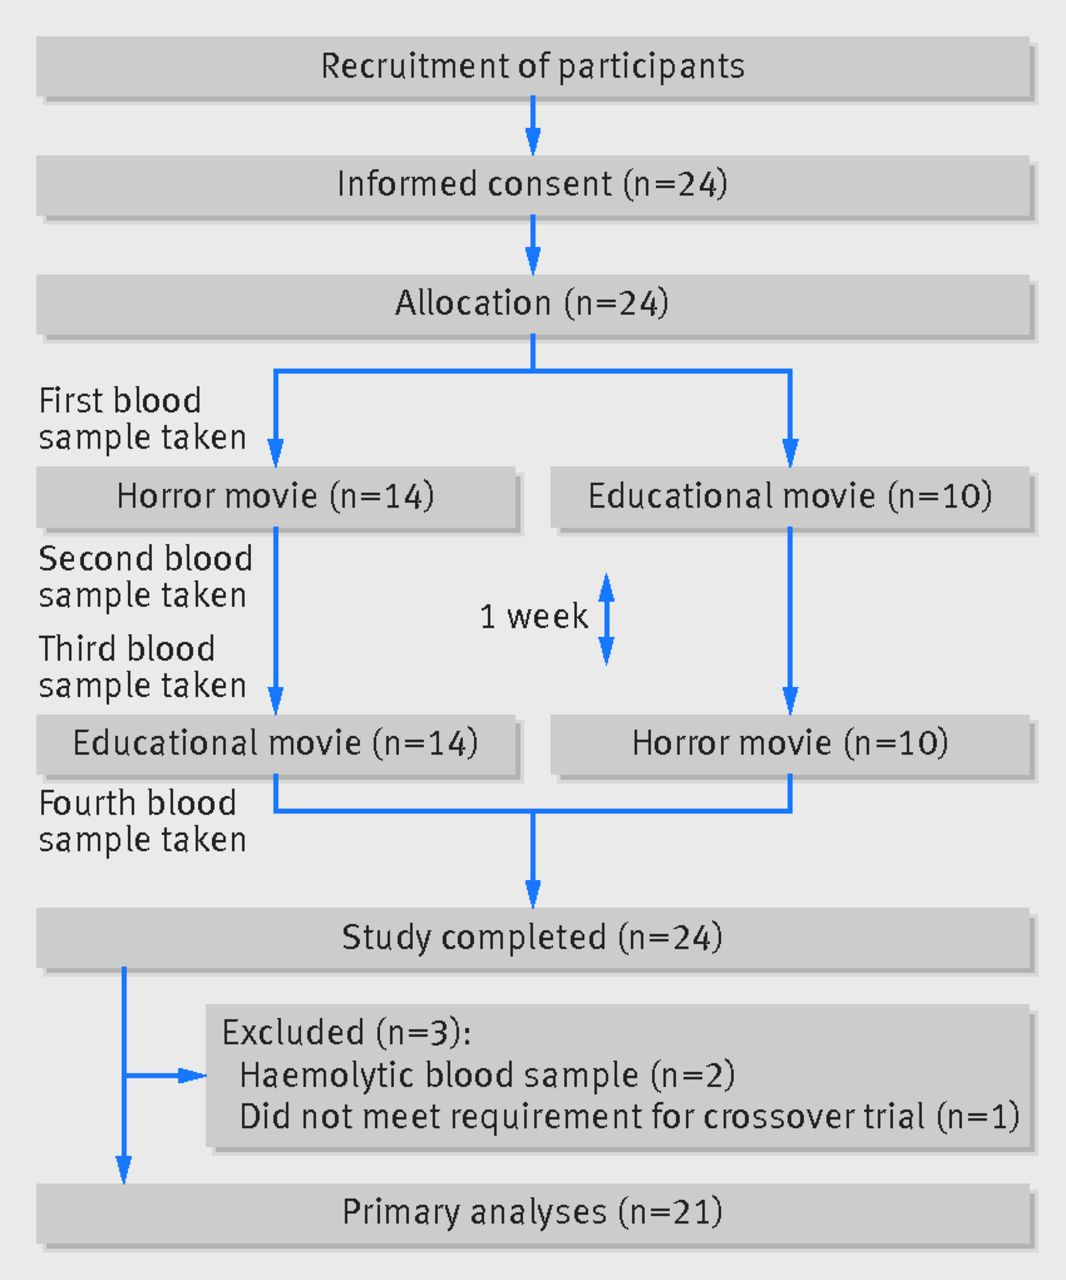 Bloodcurdling movies and measures of coagulation: Fear